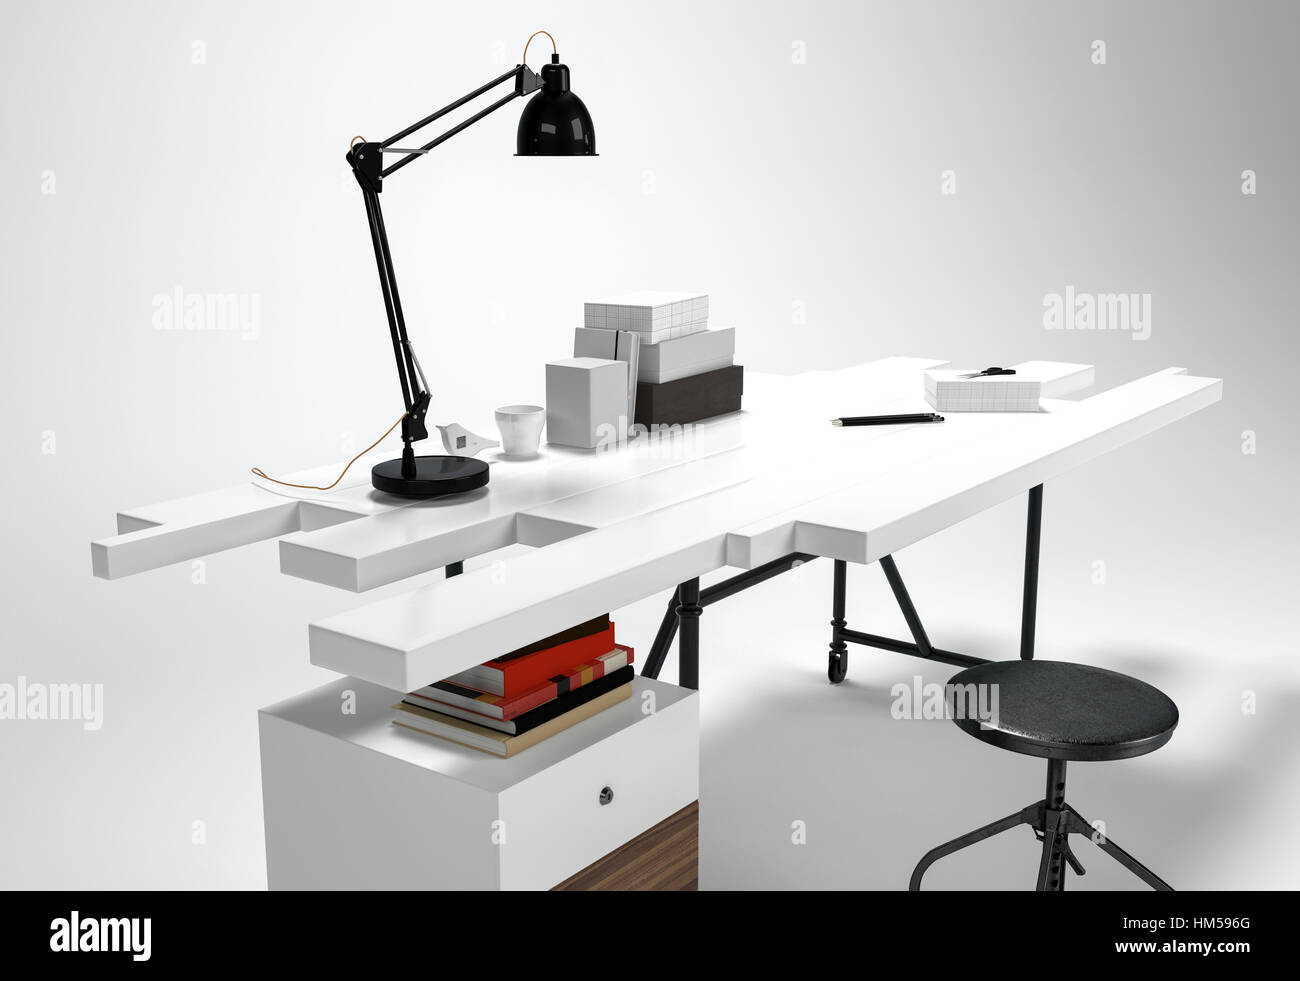 White modern office desk concept with lamp, round stool. Futuristic  furniture 3D concept isolated on white background